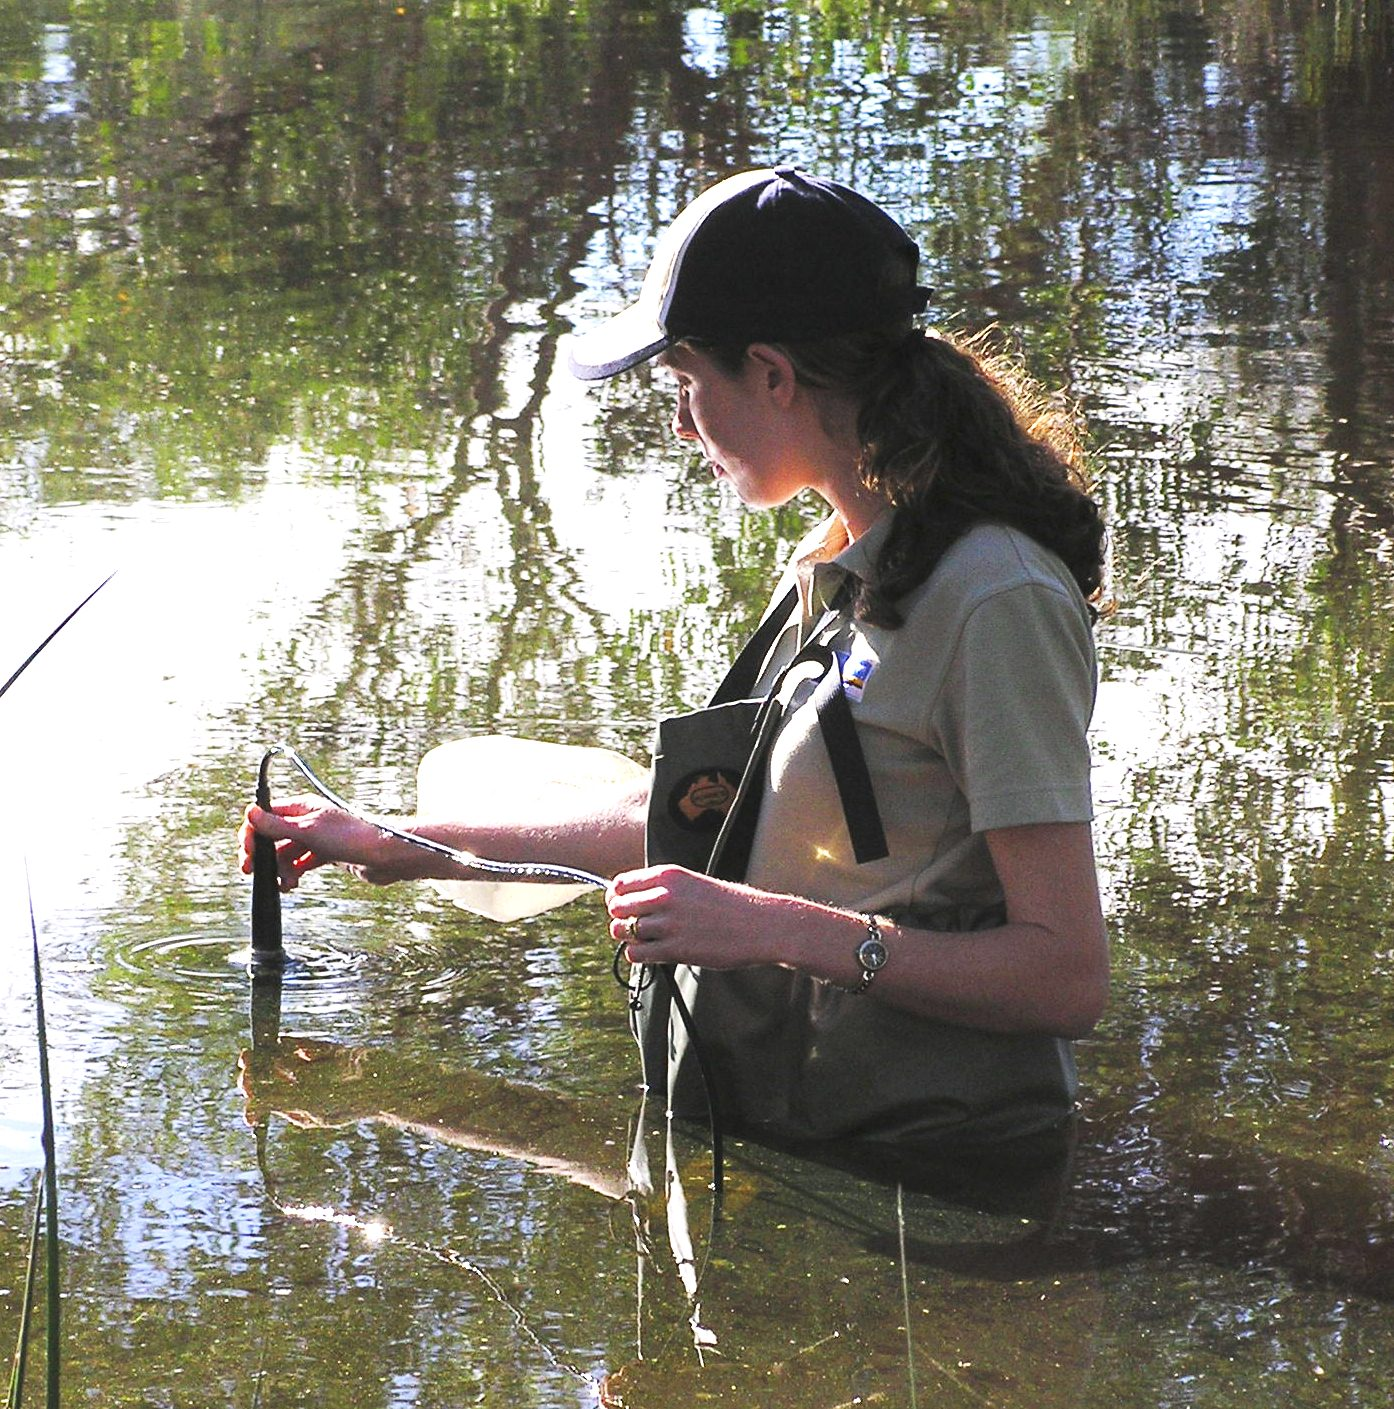 Water quality sampling at Liege Street Wetland